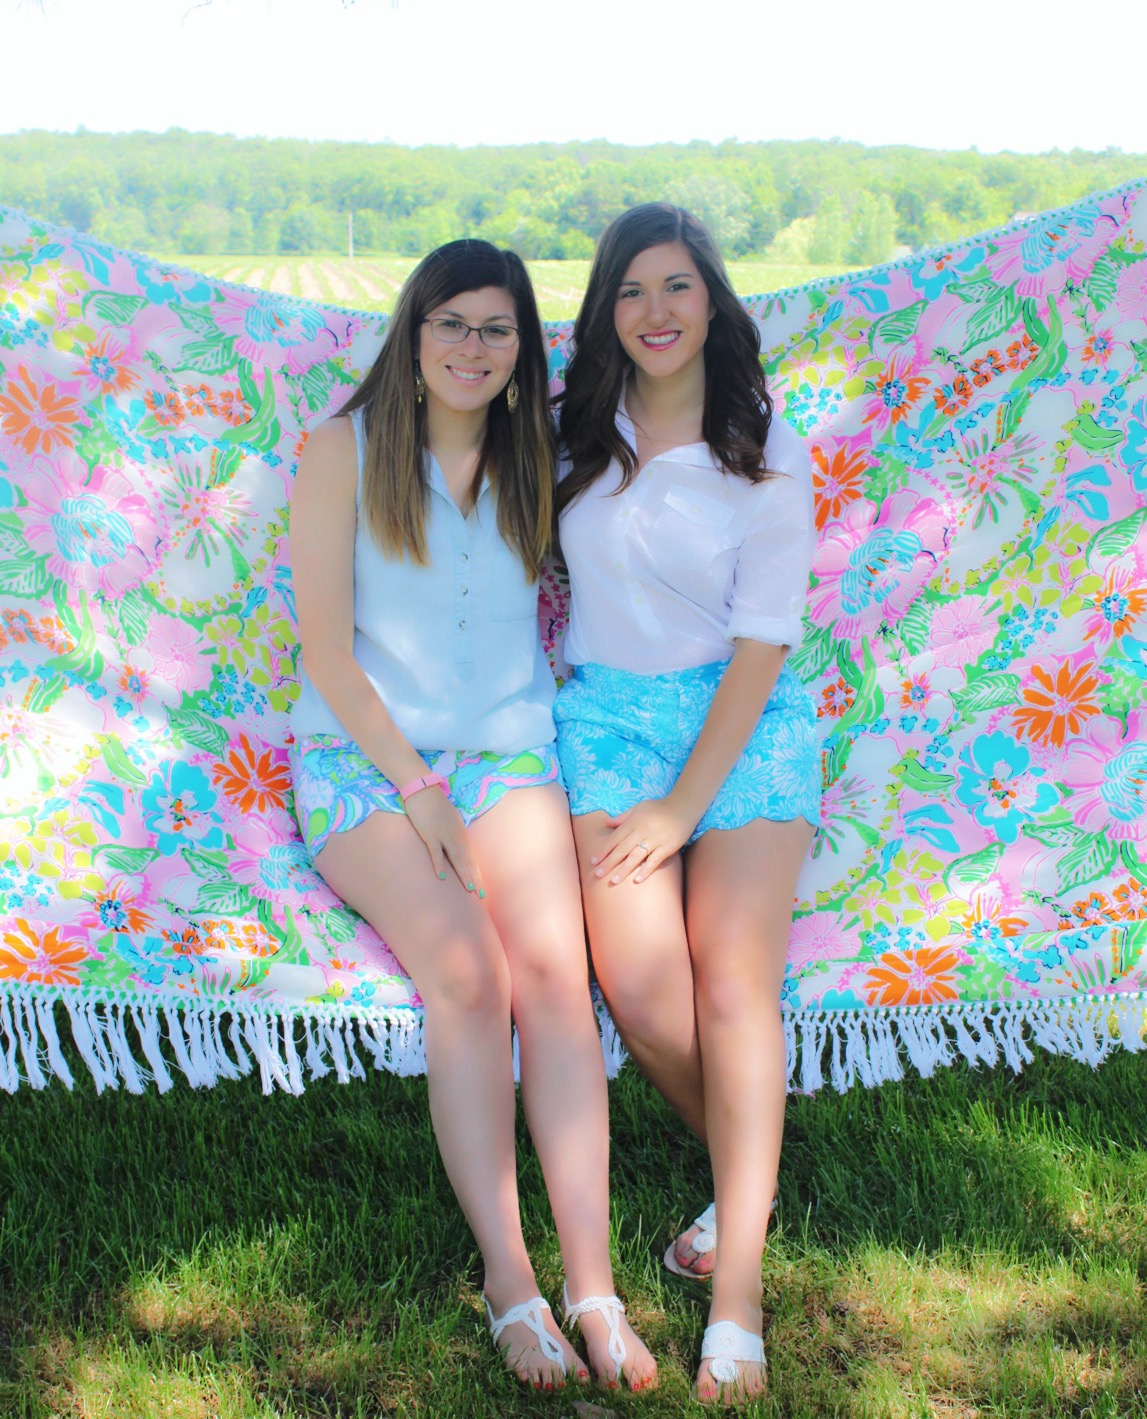 Happy National Wear Your LillyDay!!!